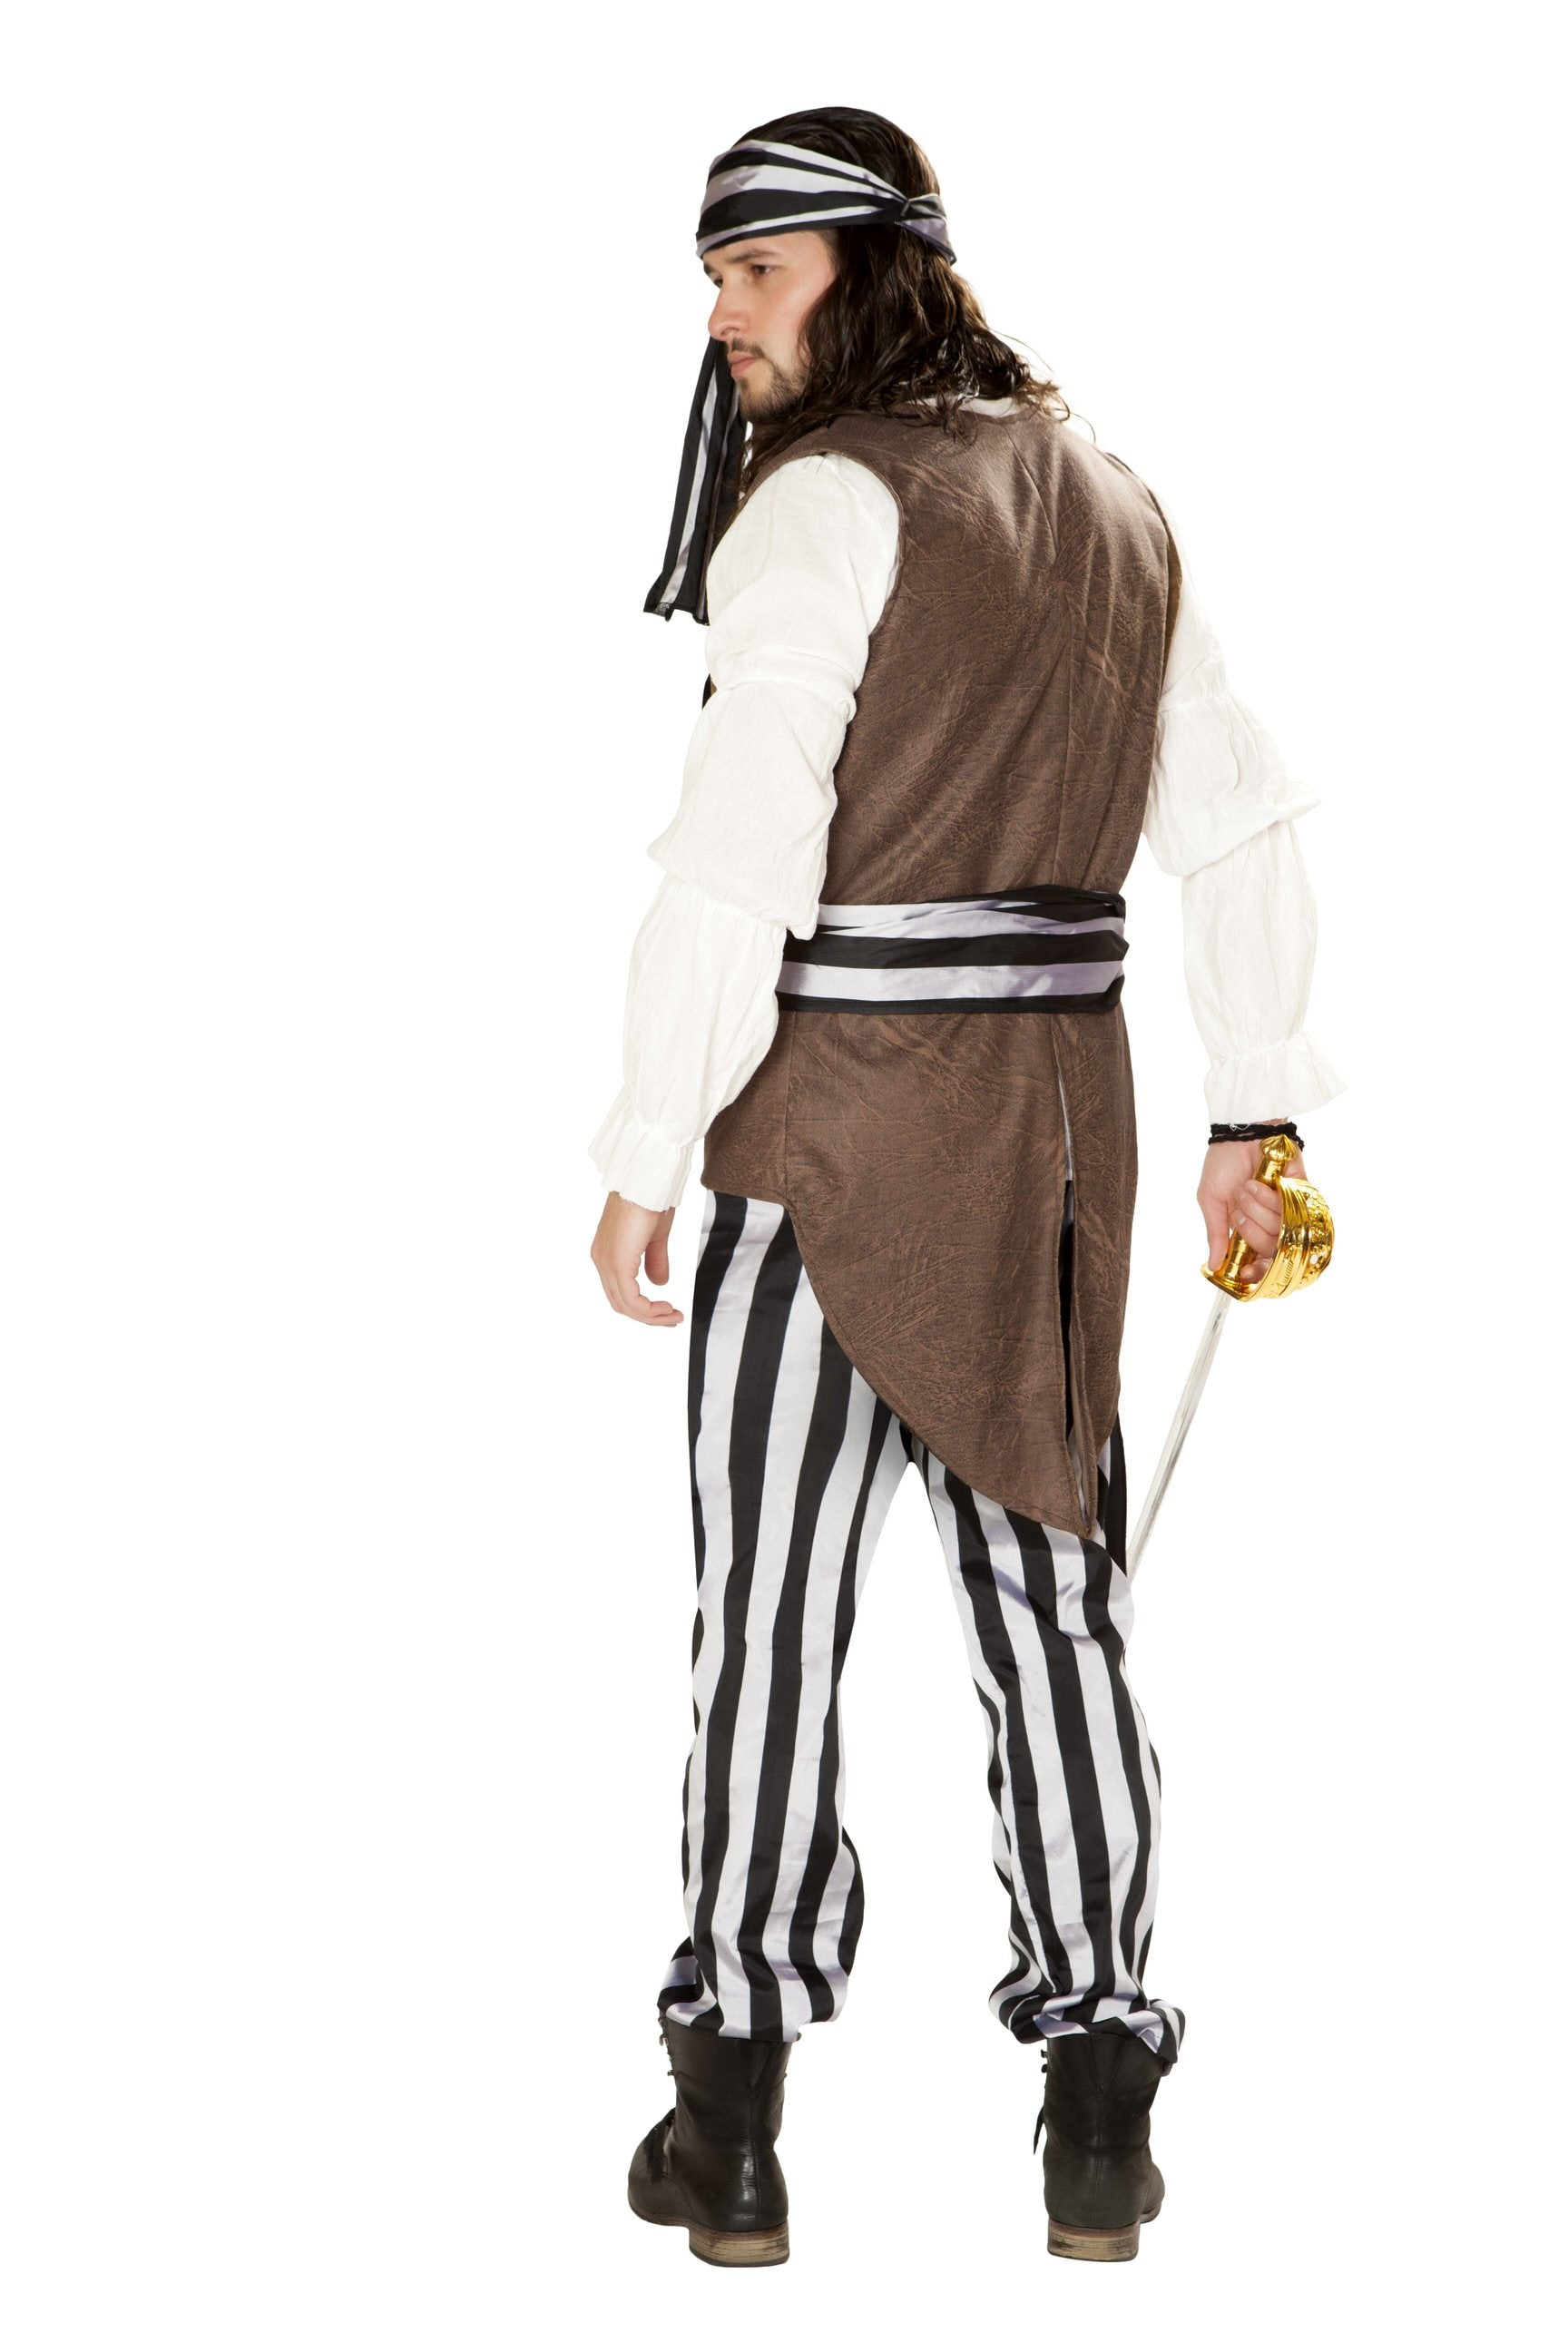 4859 - Roma Costume Mens 5pc Pirate Raider